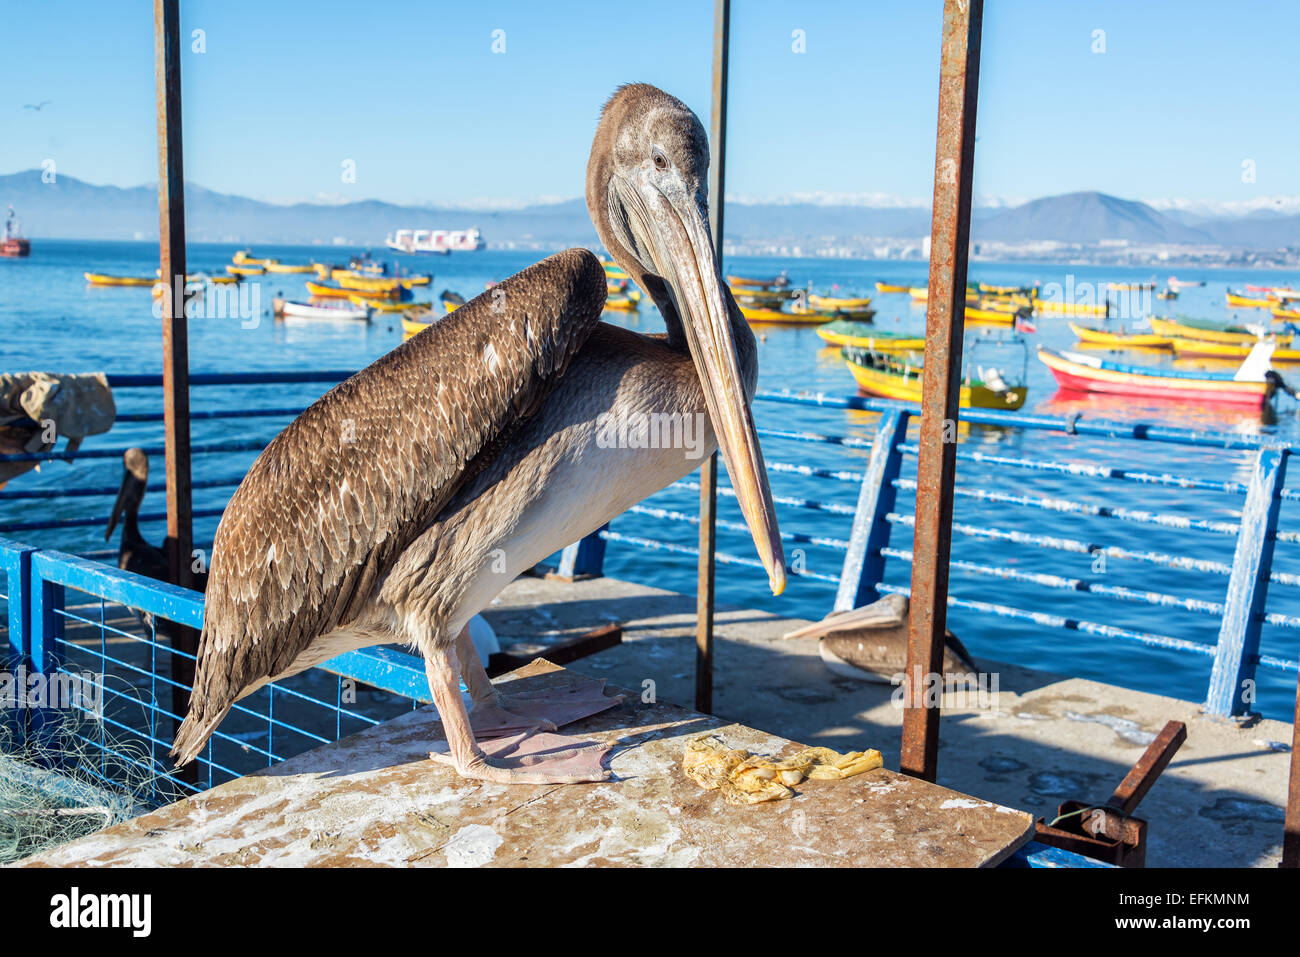 Standing pelican with colorful boats in the background in Coquimbo, Chile - Stock Image